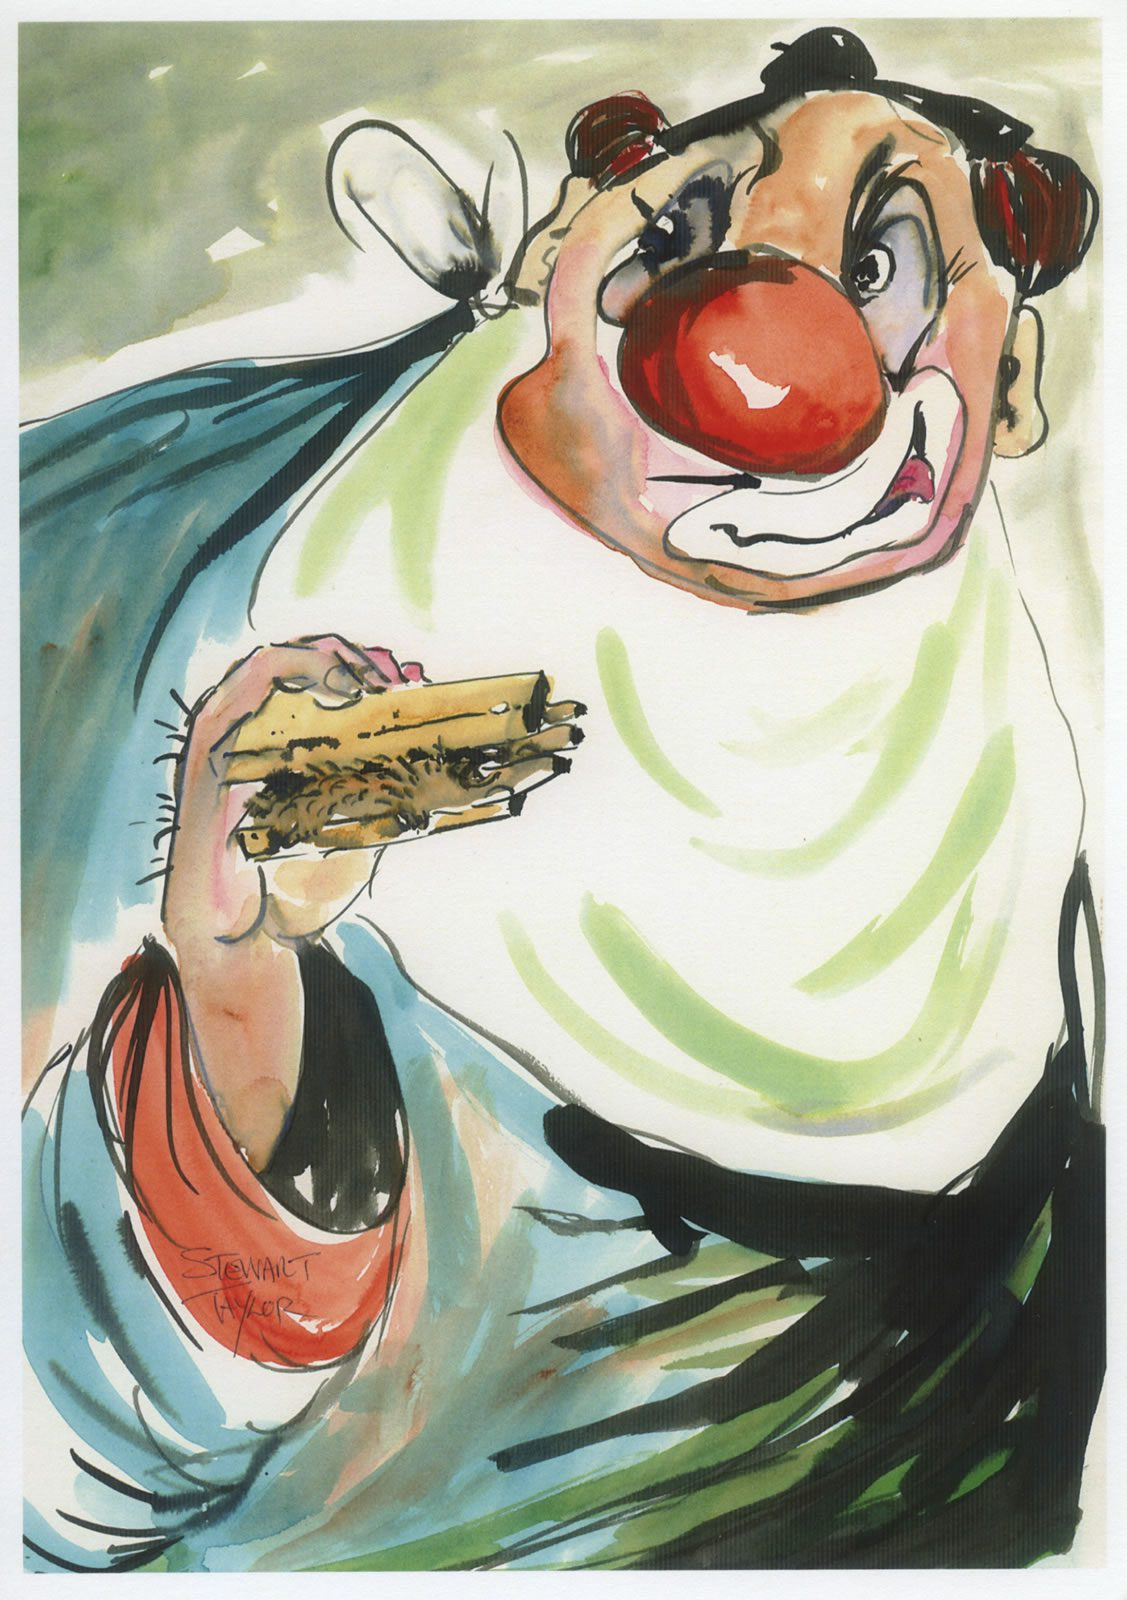 Connoisseur 2 – clown portrait from an original painting by Stewart Taylor